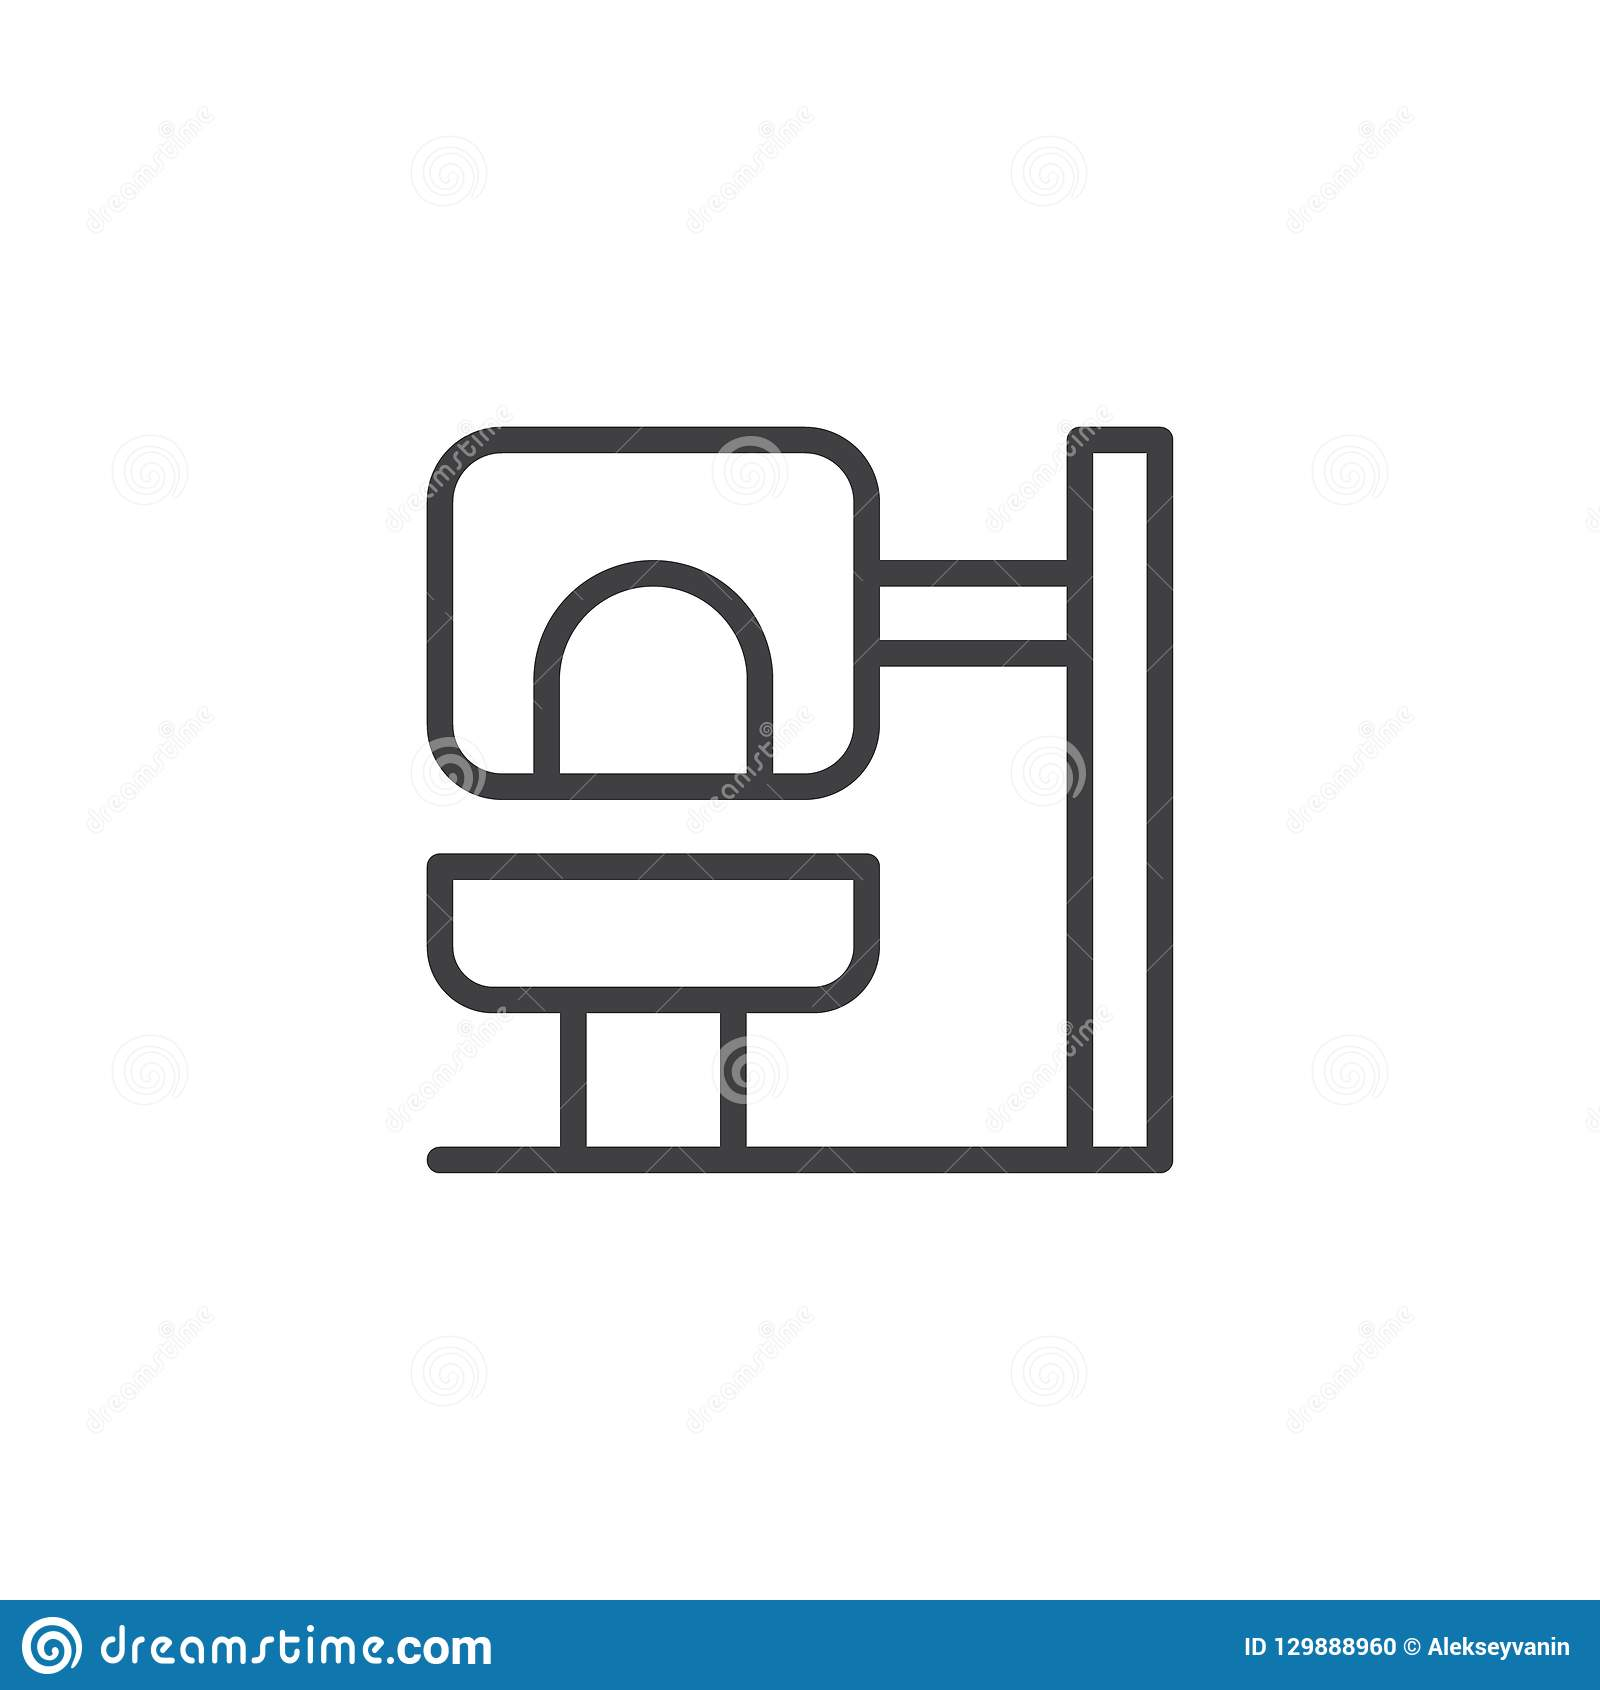 Cat House Outline Icon Stock Vector Illustration Of Symbol 129888960. Cat House Outline Icon. Wiring. Diagram Of A Cat House At Scoala.co